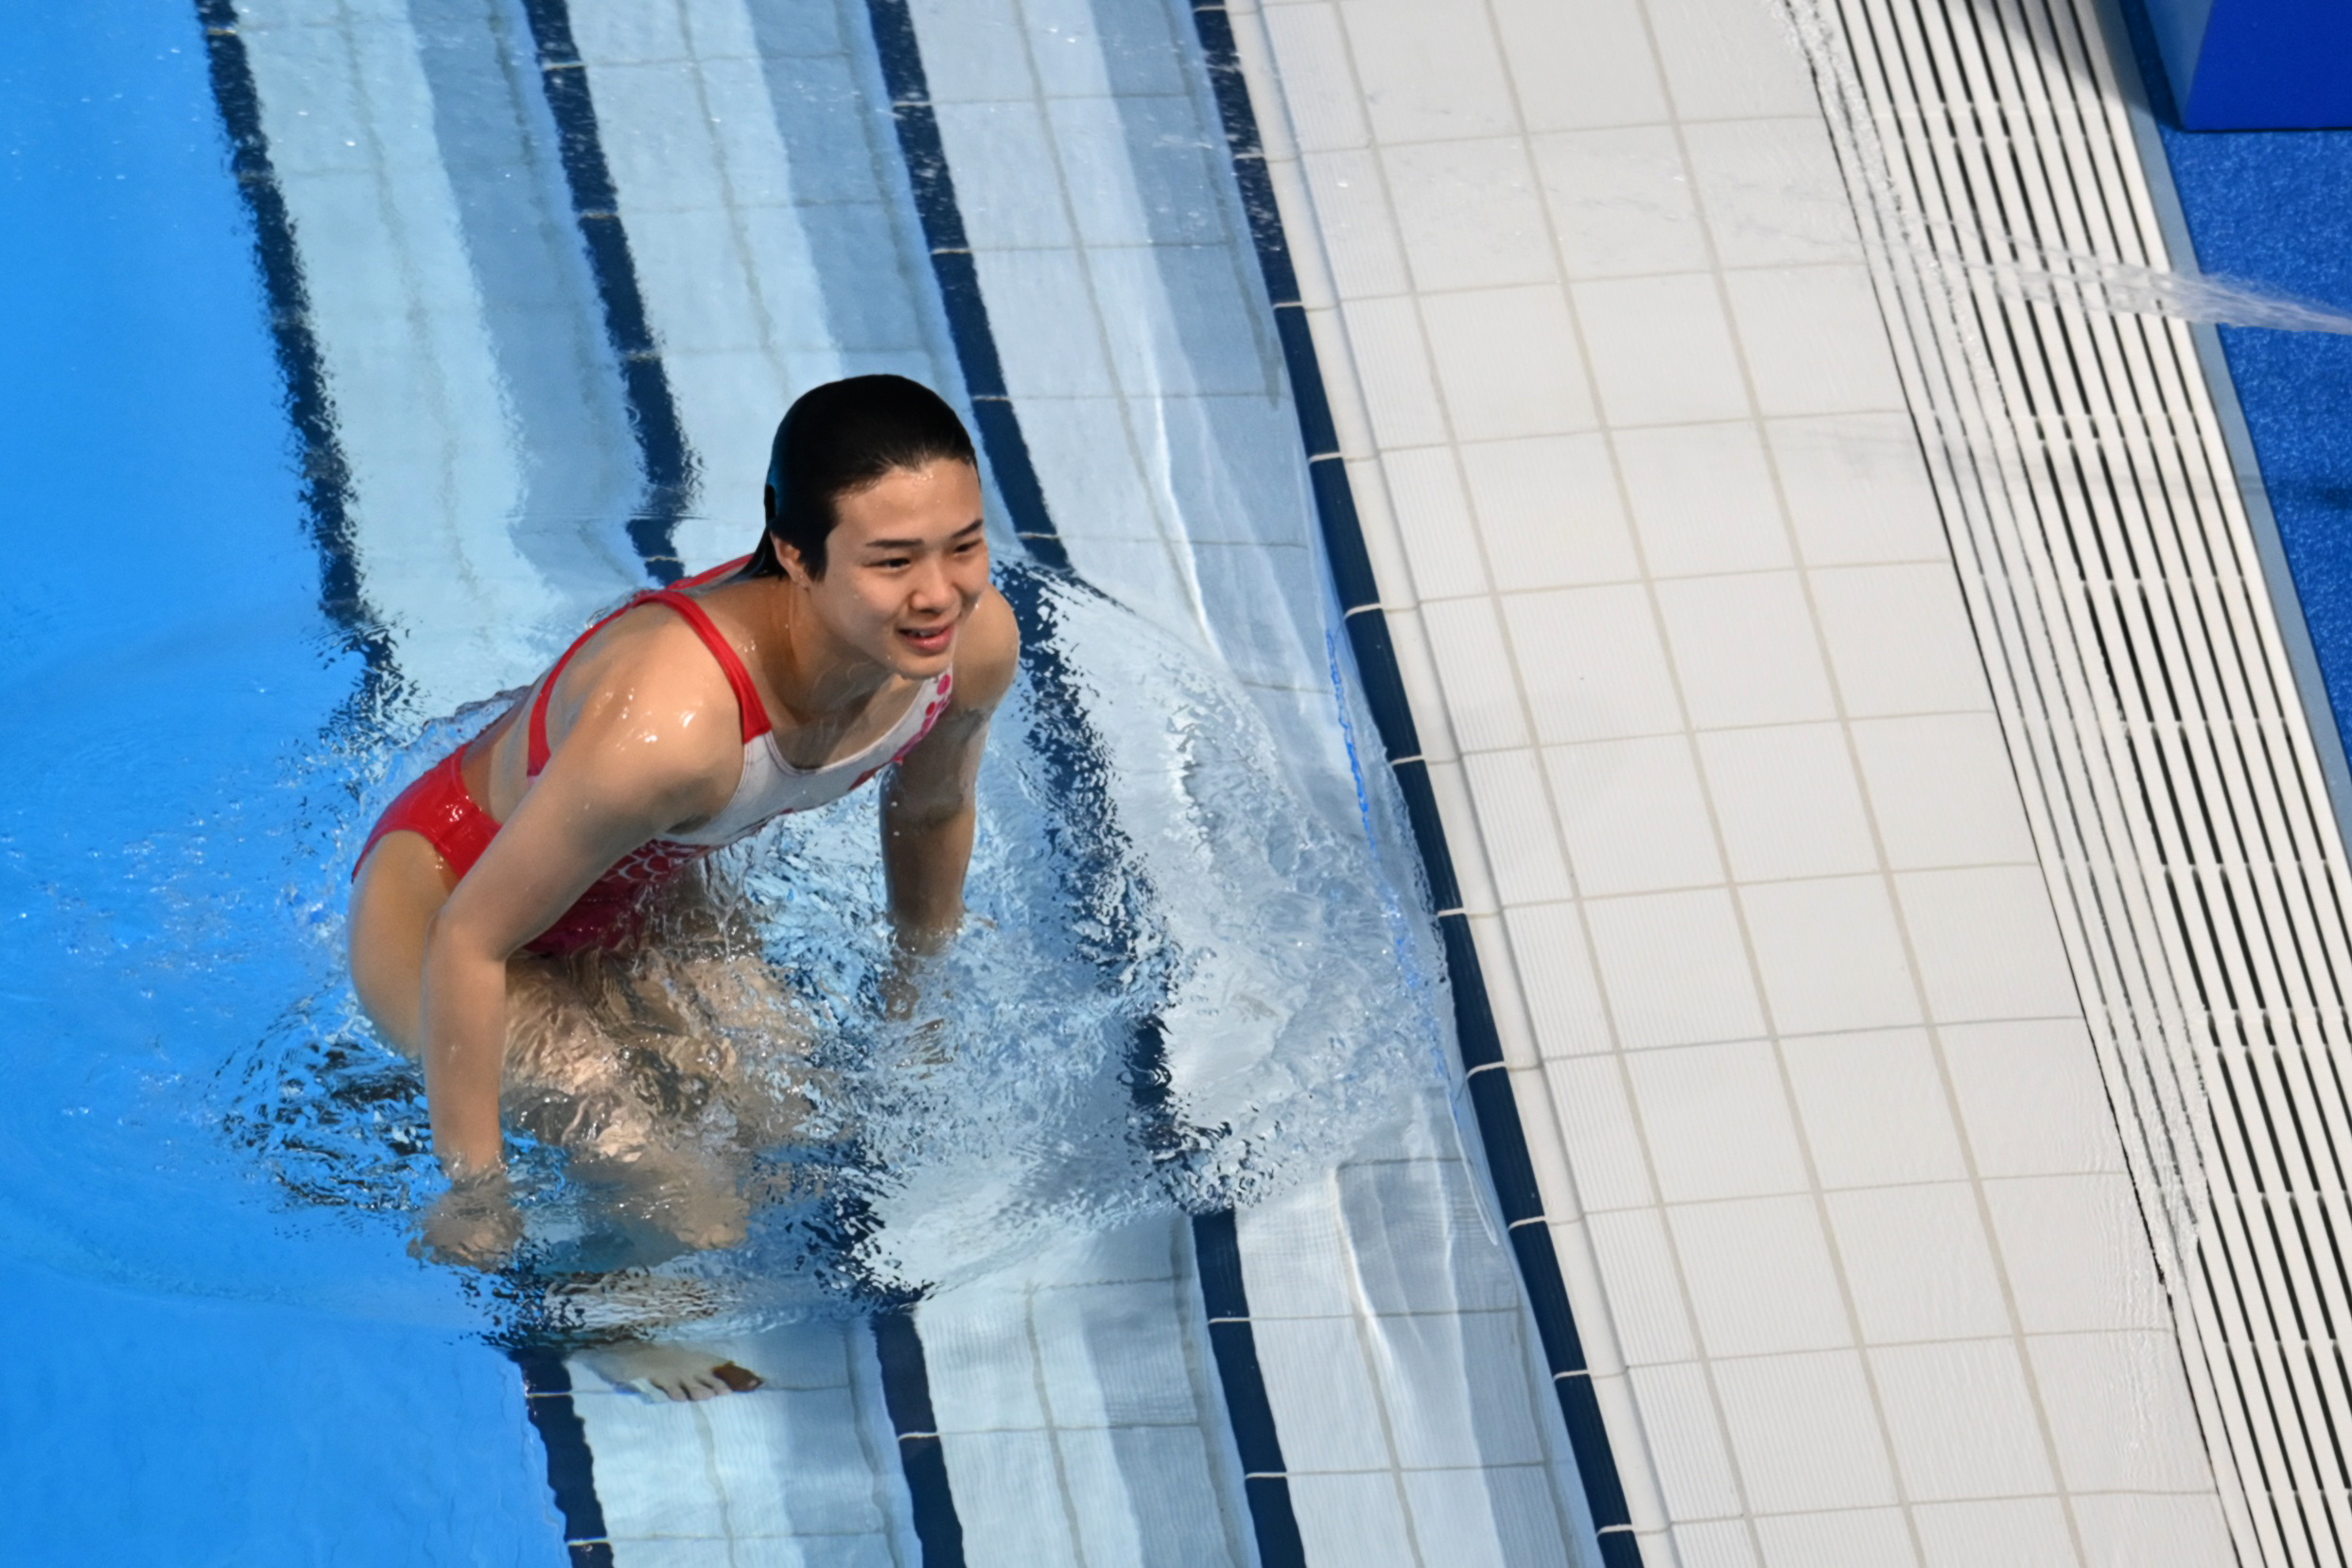 Tokyo 2020 Olympics - Diving - Women's 3m Springboard - Final - Tokyo Aquatics Centre, Tokyo, Japan - August 1, 2021. Tingmao Shi of China leaves the pool after the last dive REUTERS/Annegret Hilse